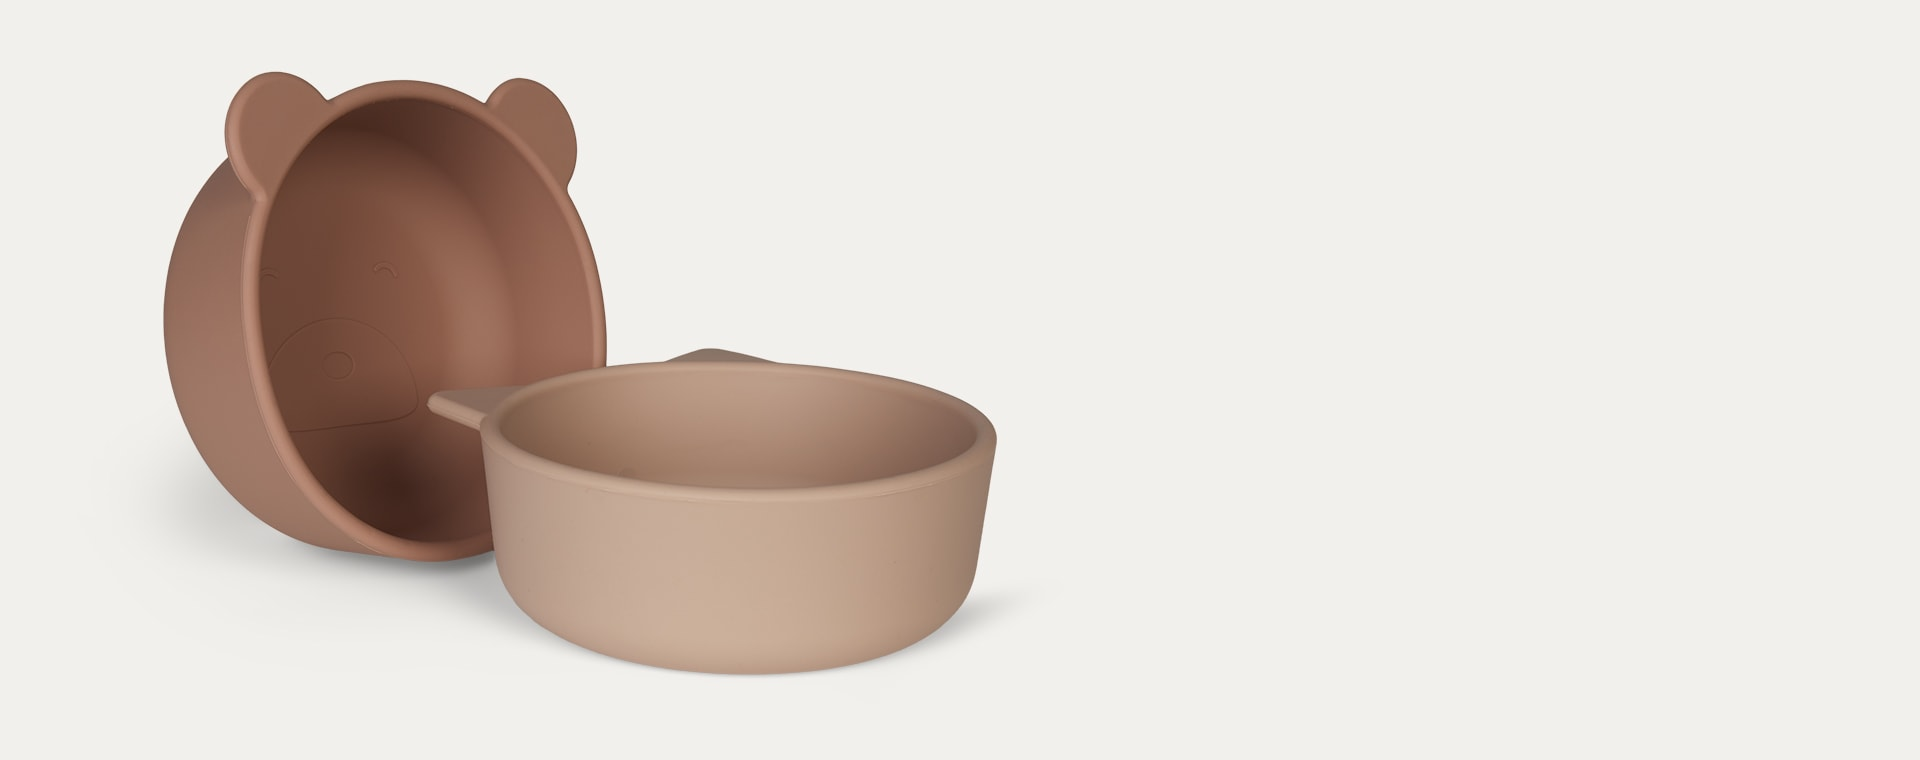 Rose Mix Liewood 4-Pack Iggy Silicone Bowls